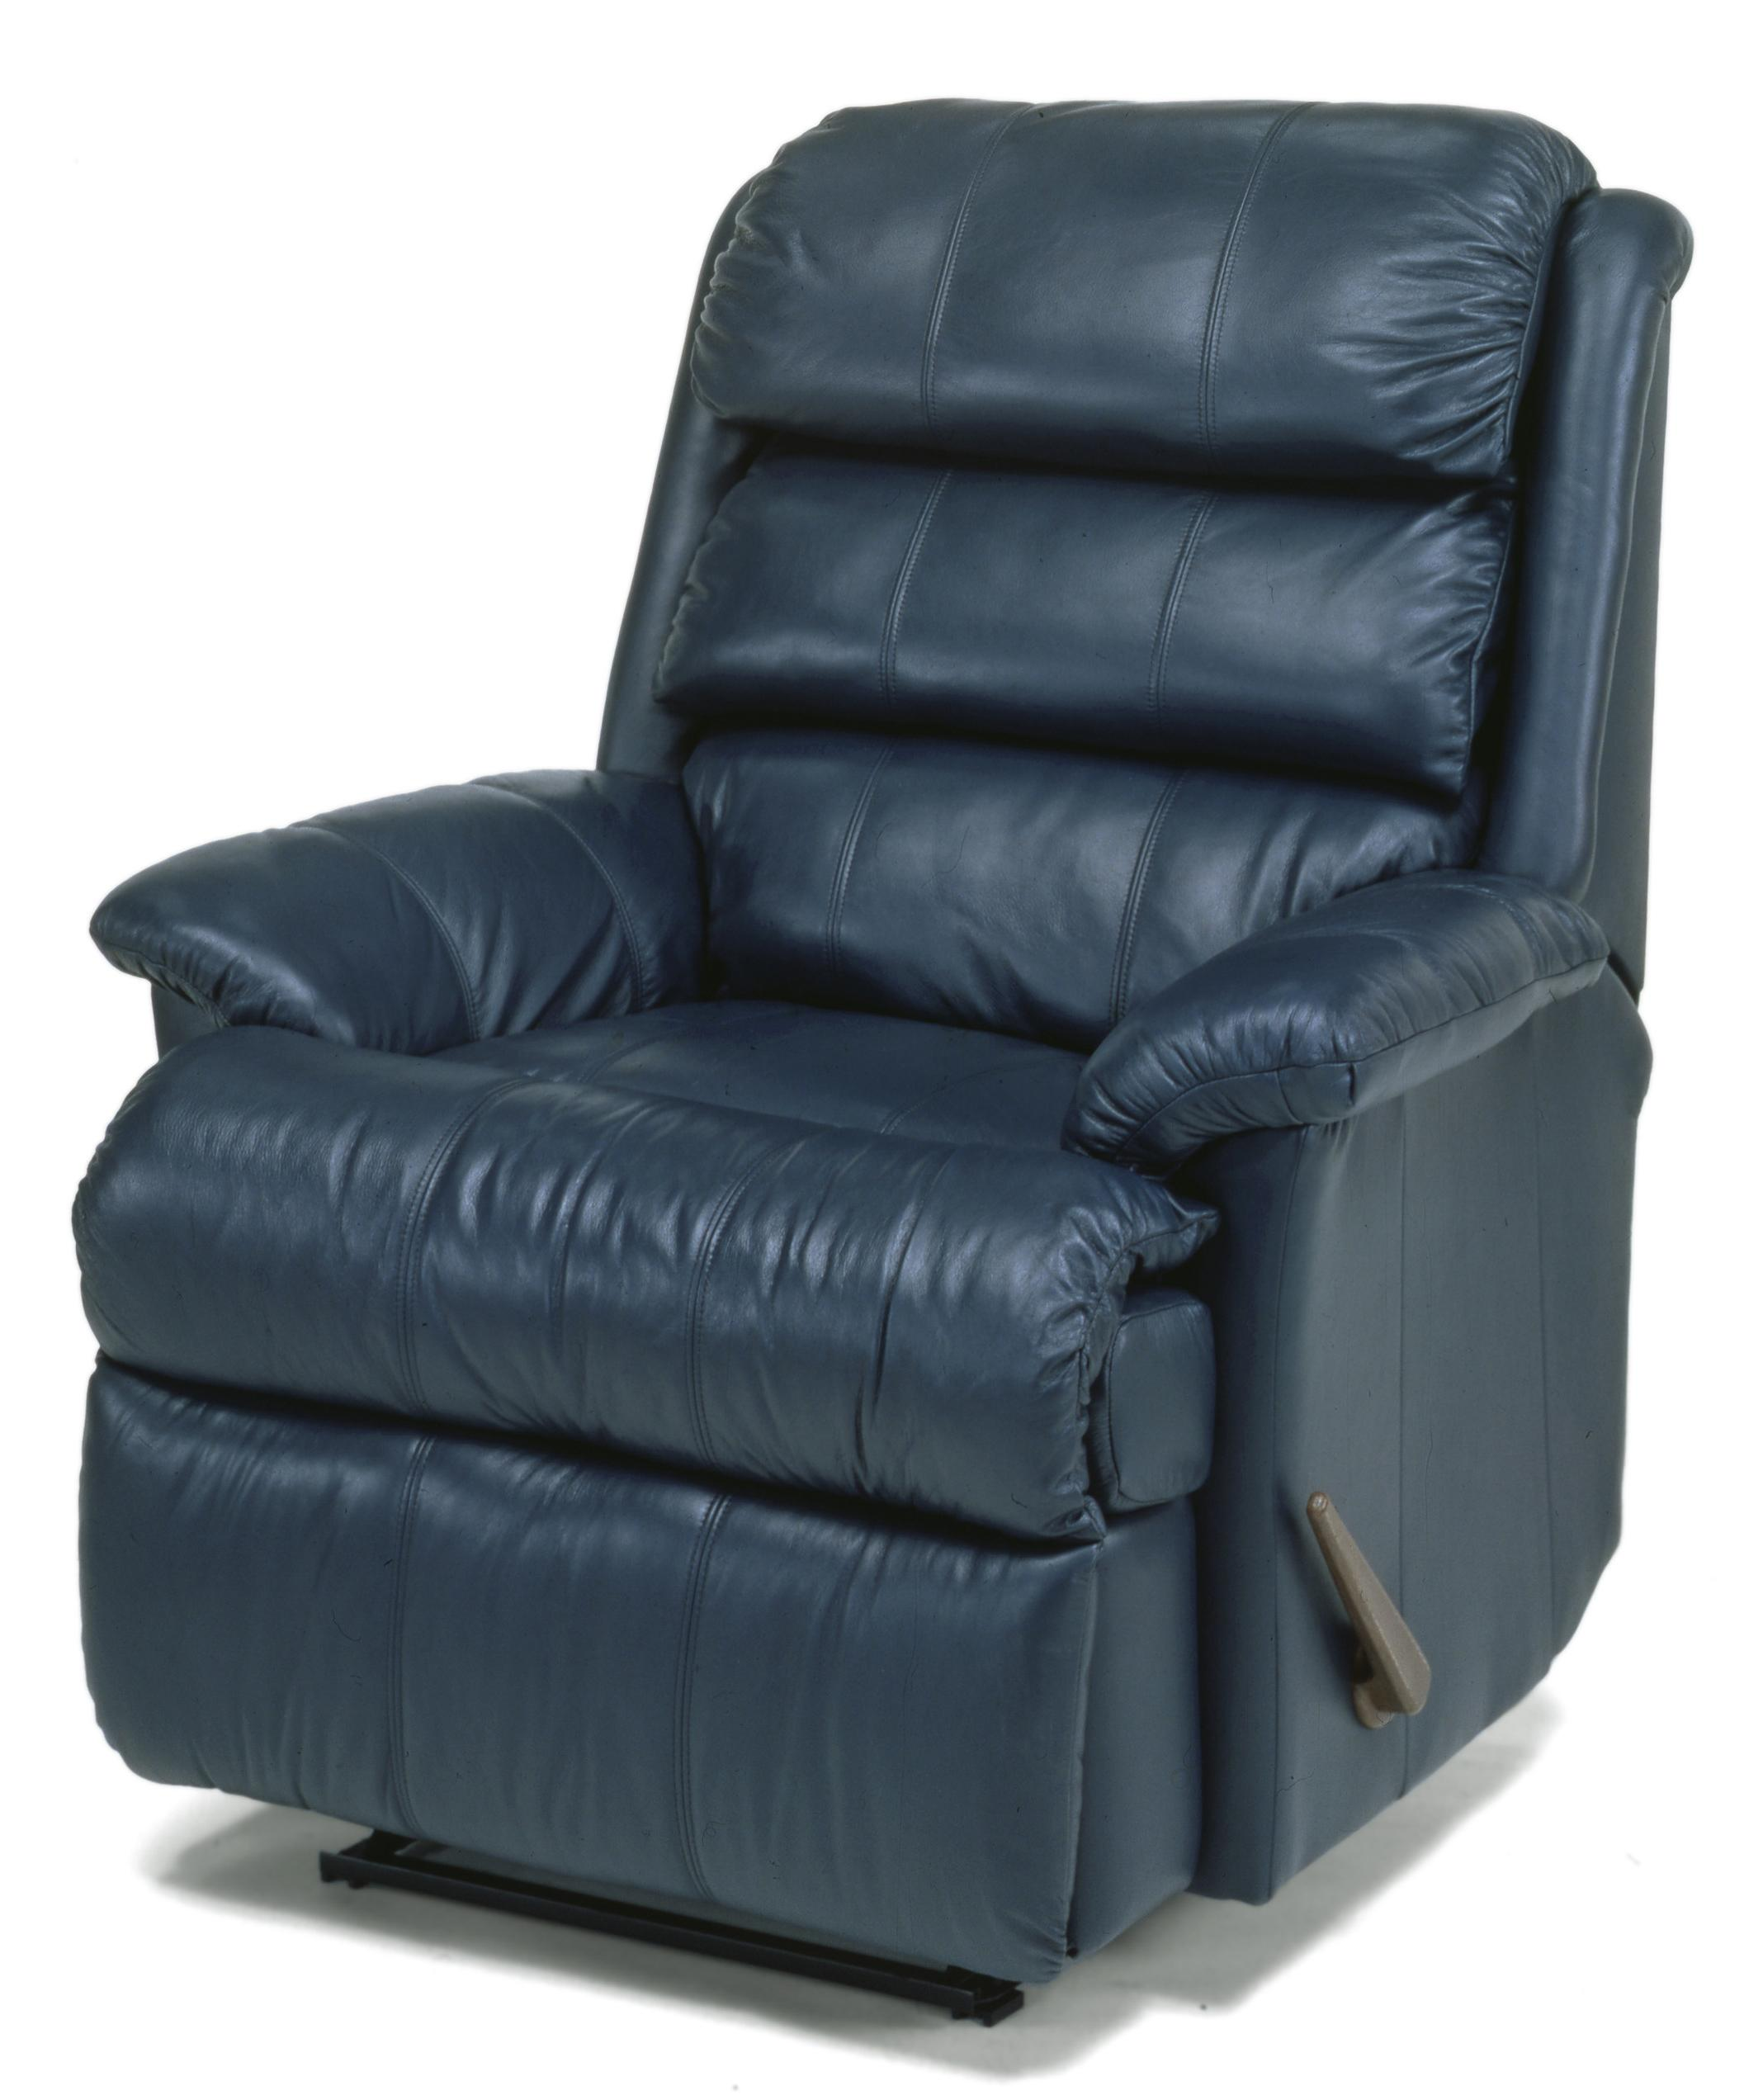 Flexsteel Yukon Recliner - Item Number: 2209-500O